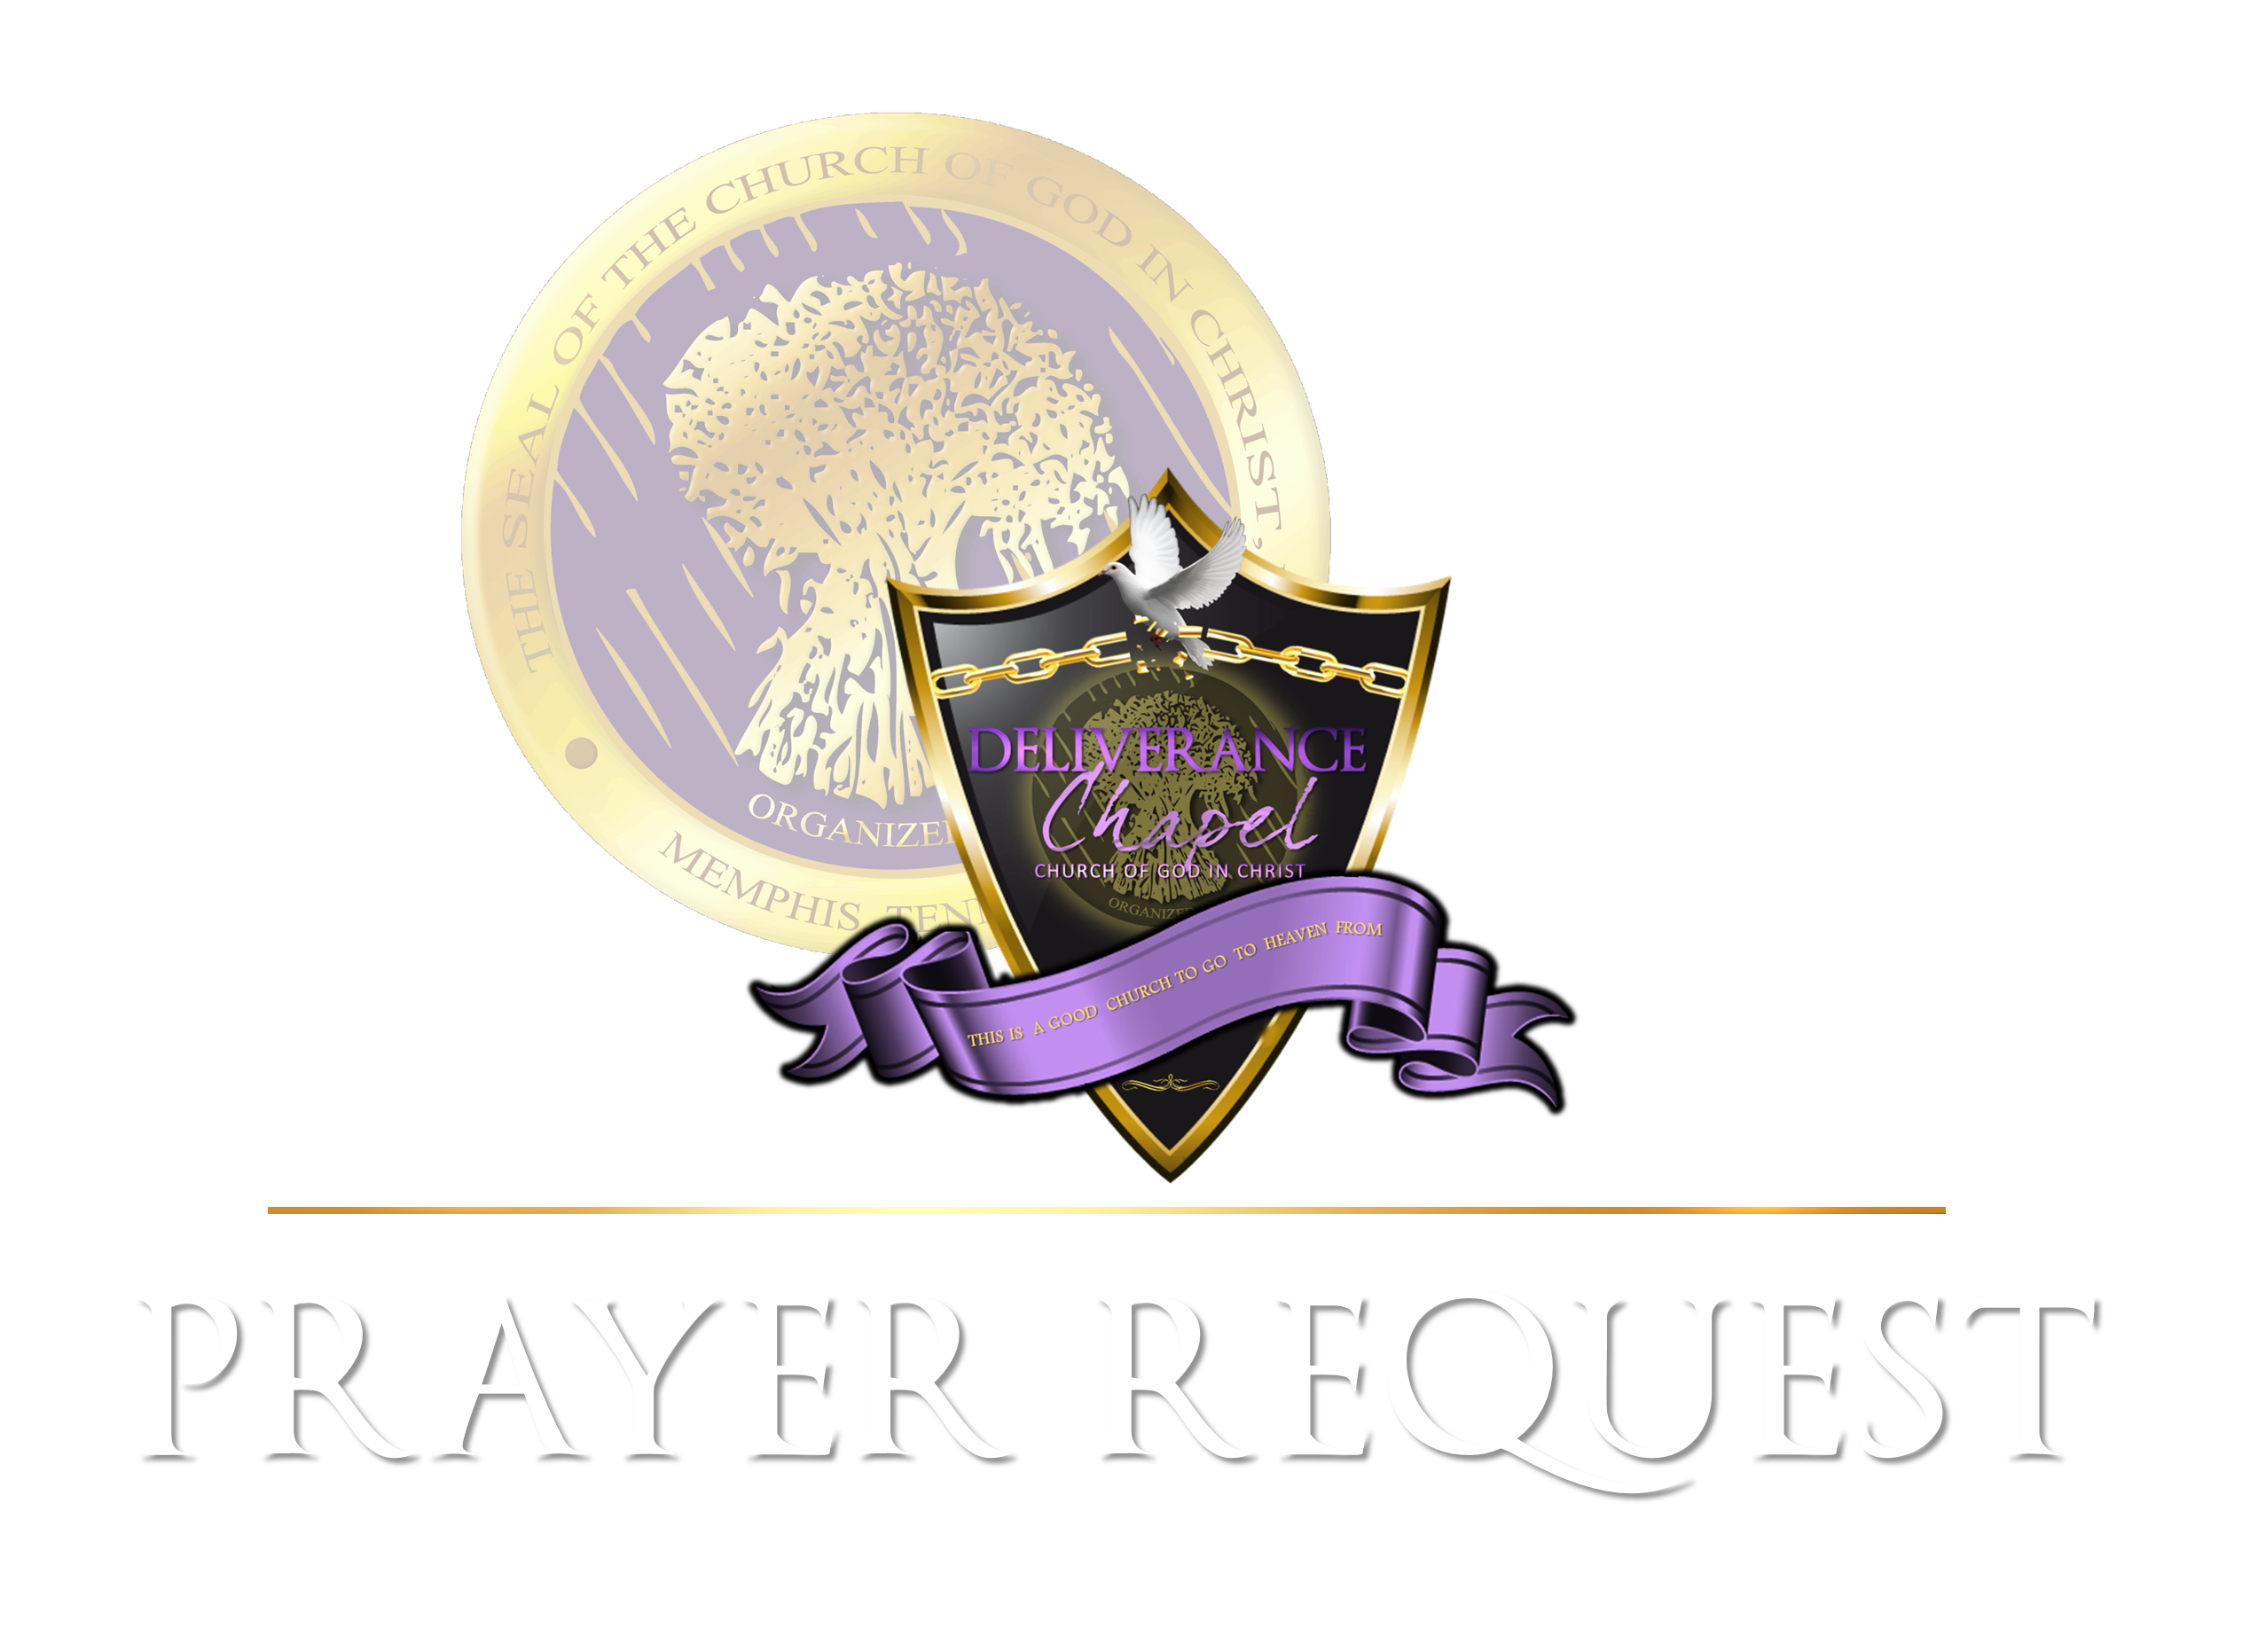 Prayer request title